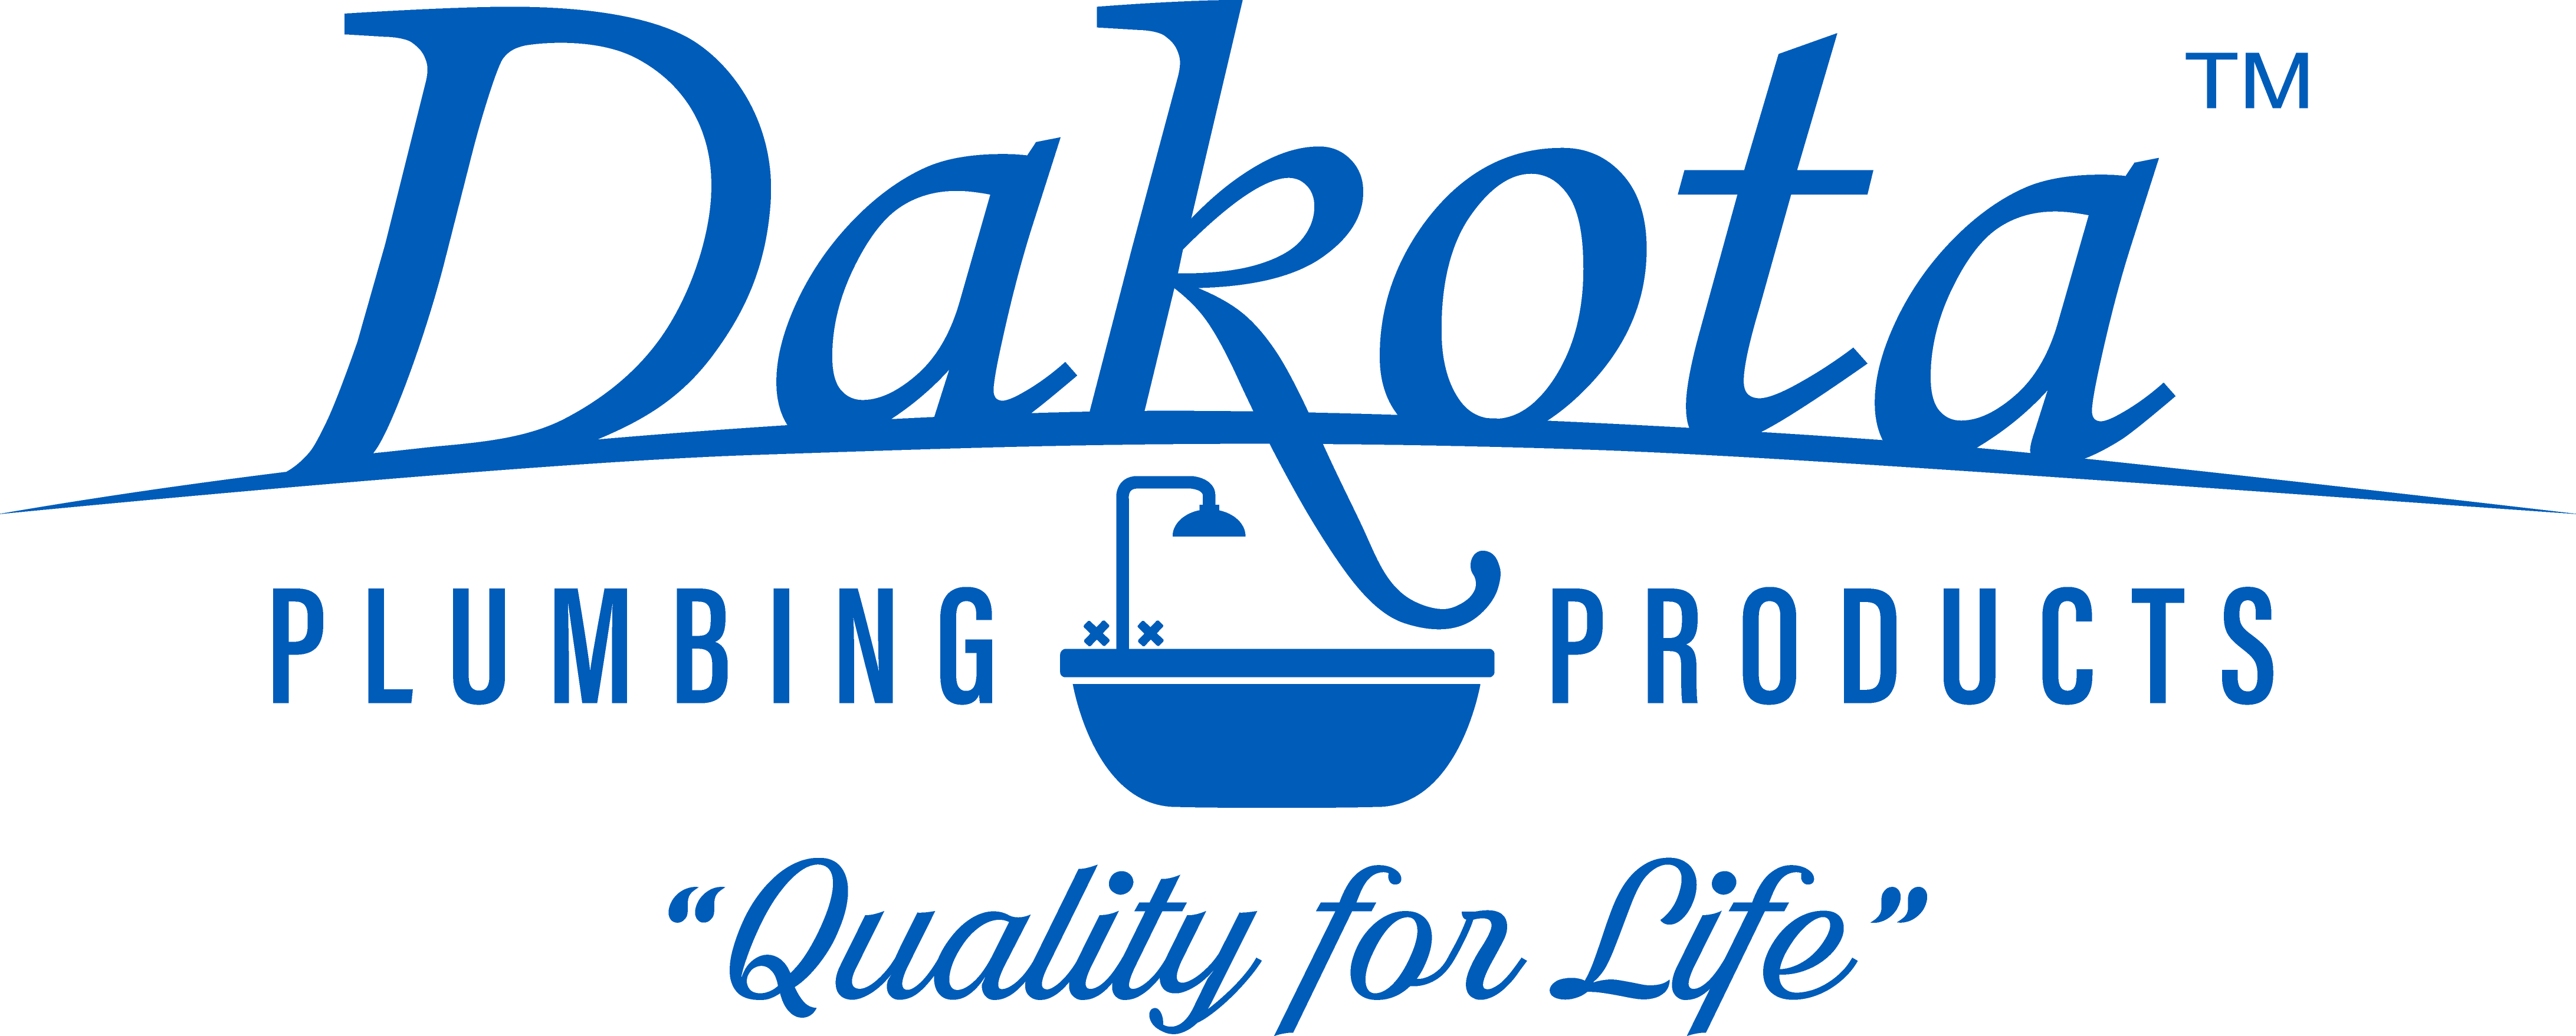 Dakota Plumbing Products Logo - Quality for Life